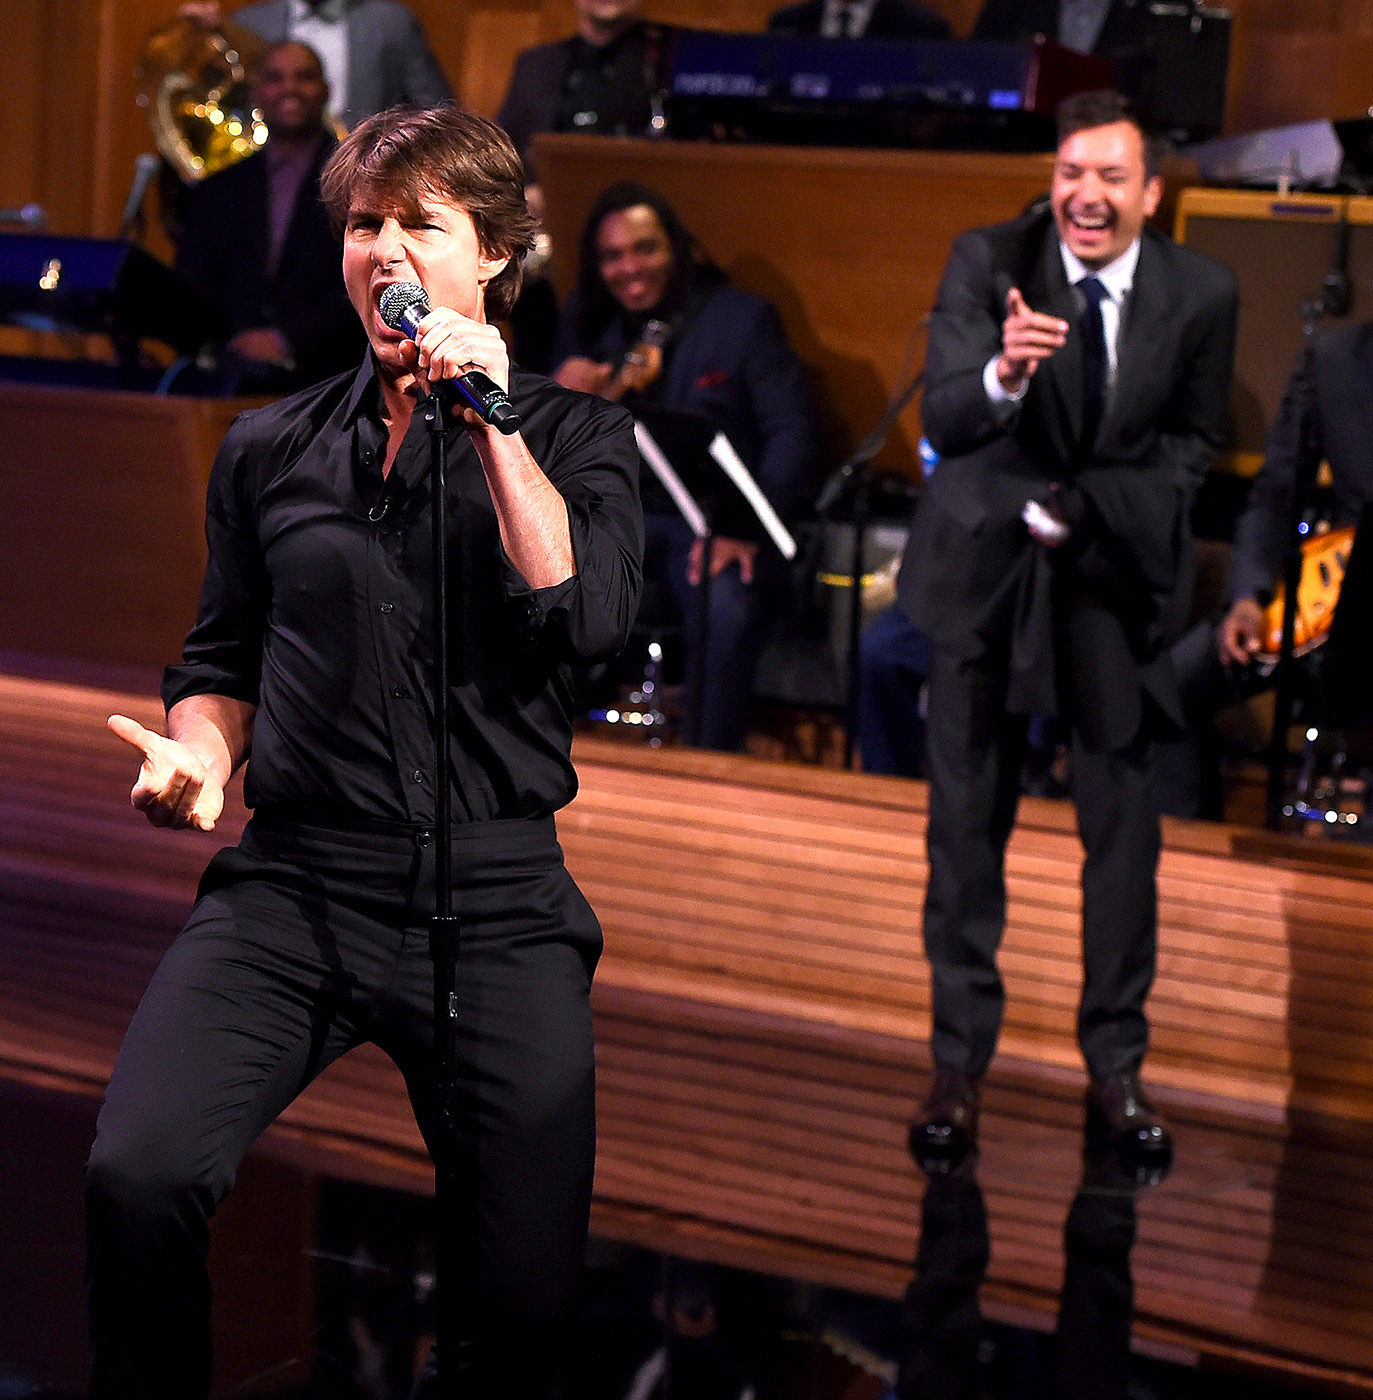 Tom Cruise & Jimmy Fallon Engage In A LIP SYNC BATTLE!